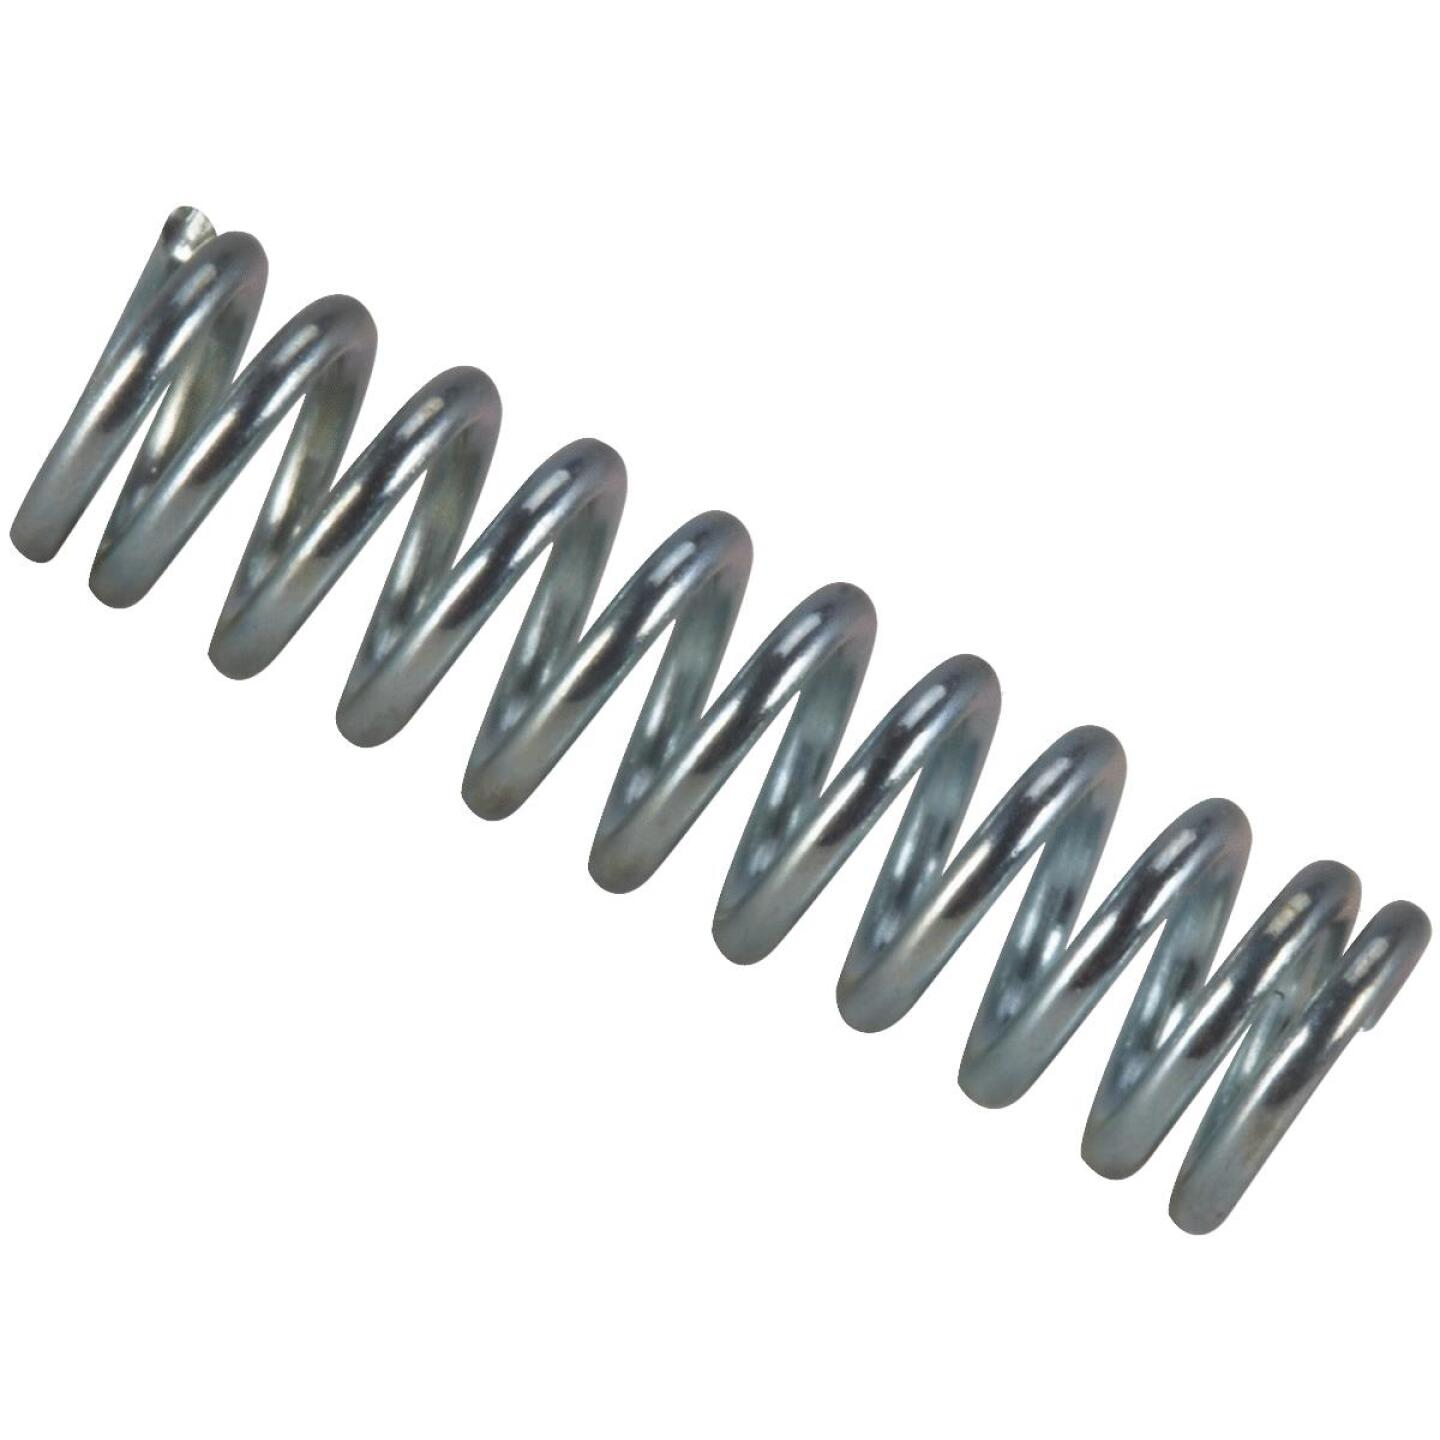 Century Spring 2-3/4 In. x 13/32 In. Compression Spring (2 Count) Image 1